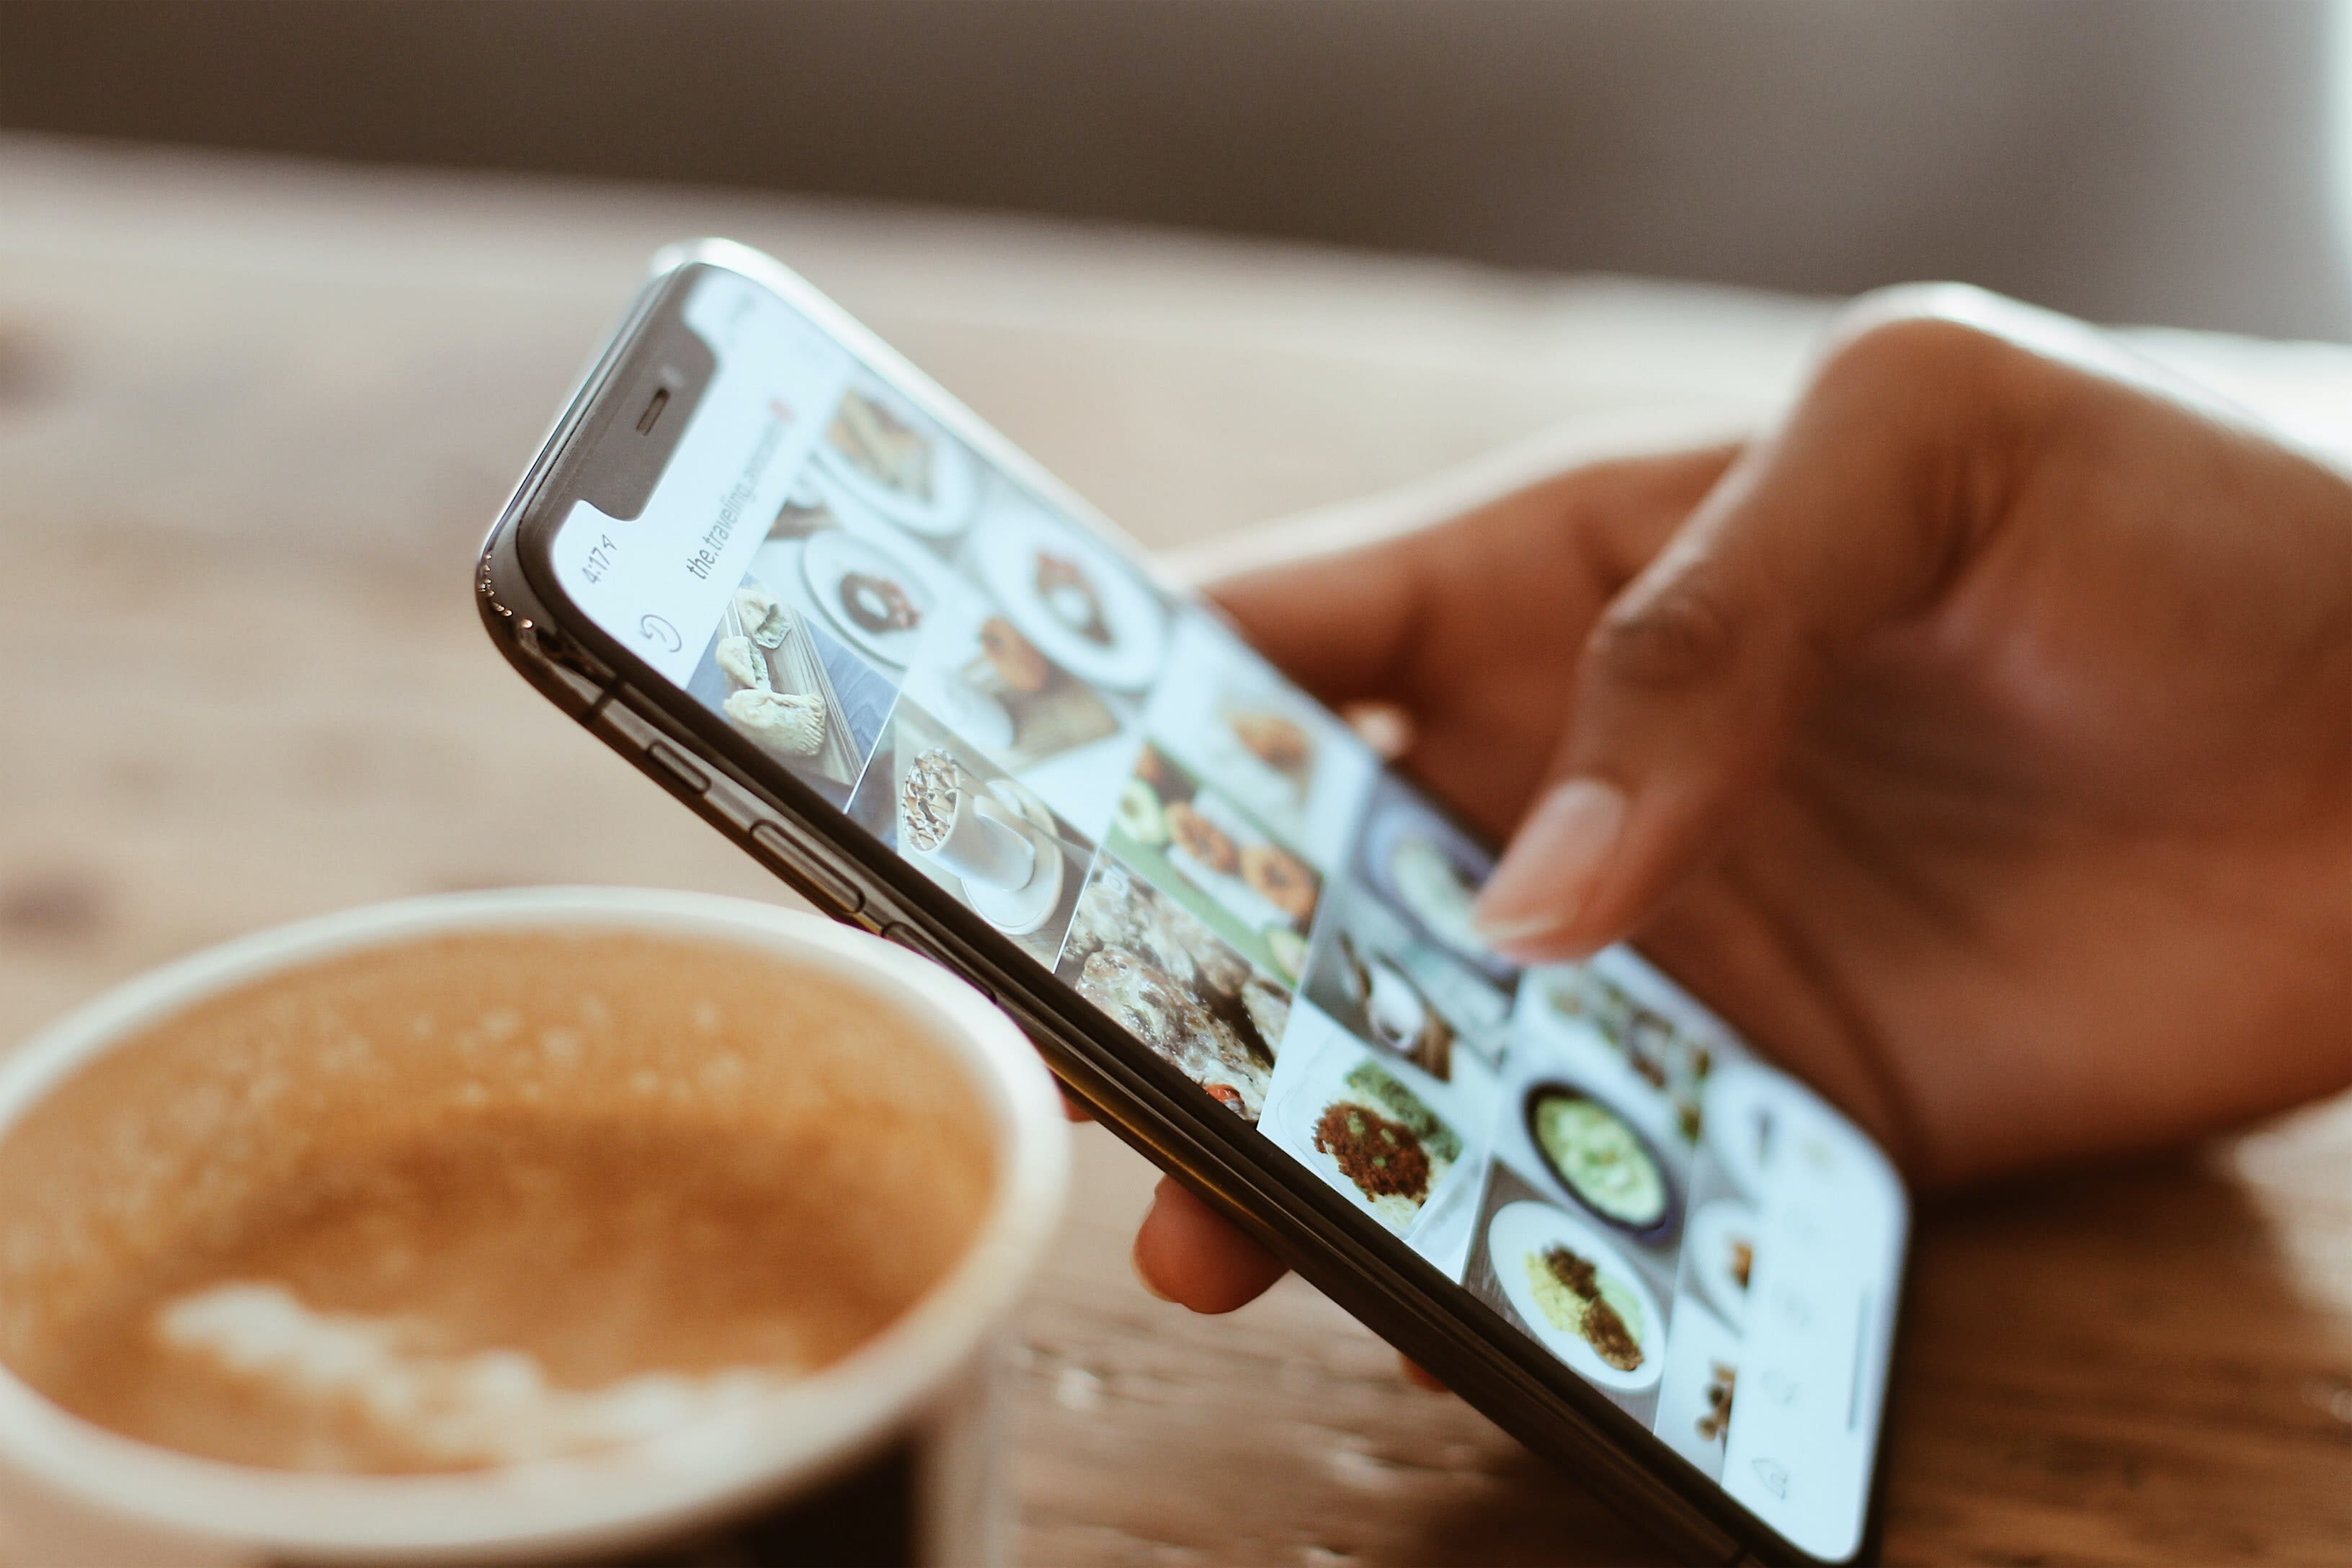 A person browsing through a restaurant's Instagram Shopping Page  Photo by Kerde Severin from Pexels